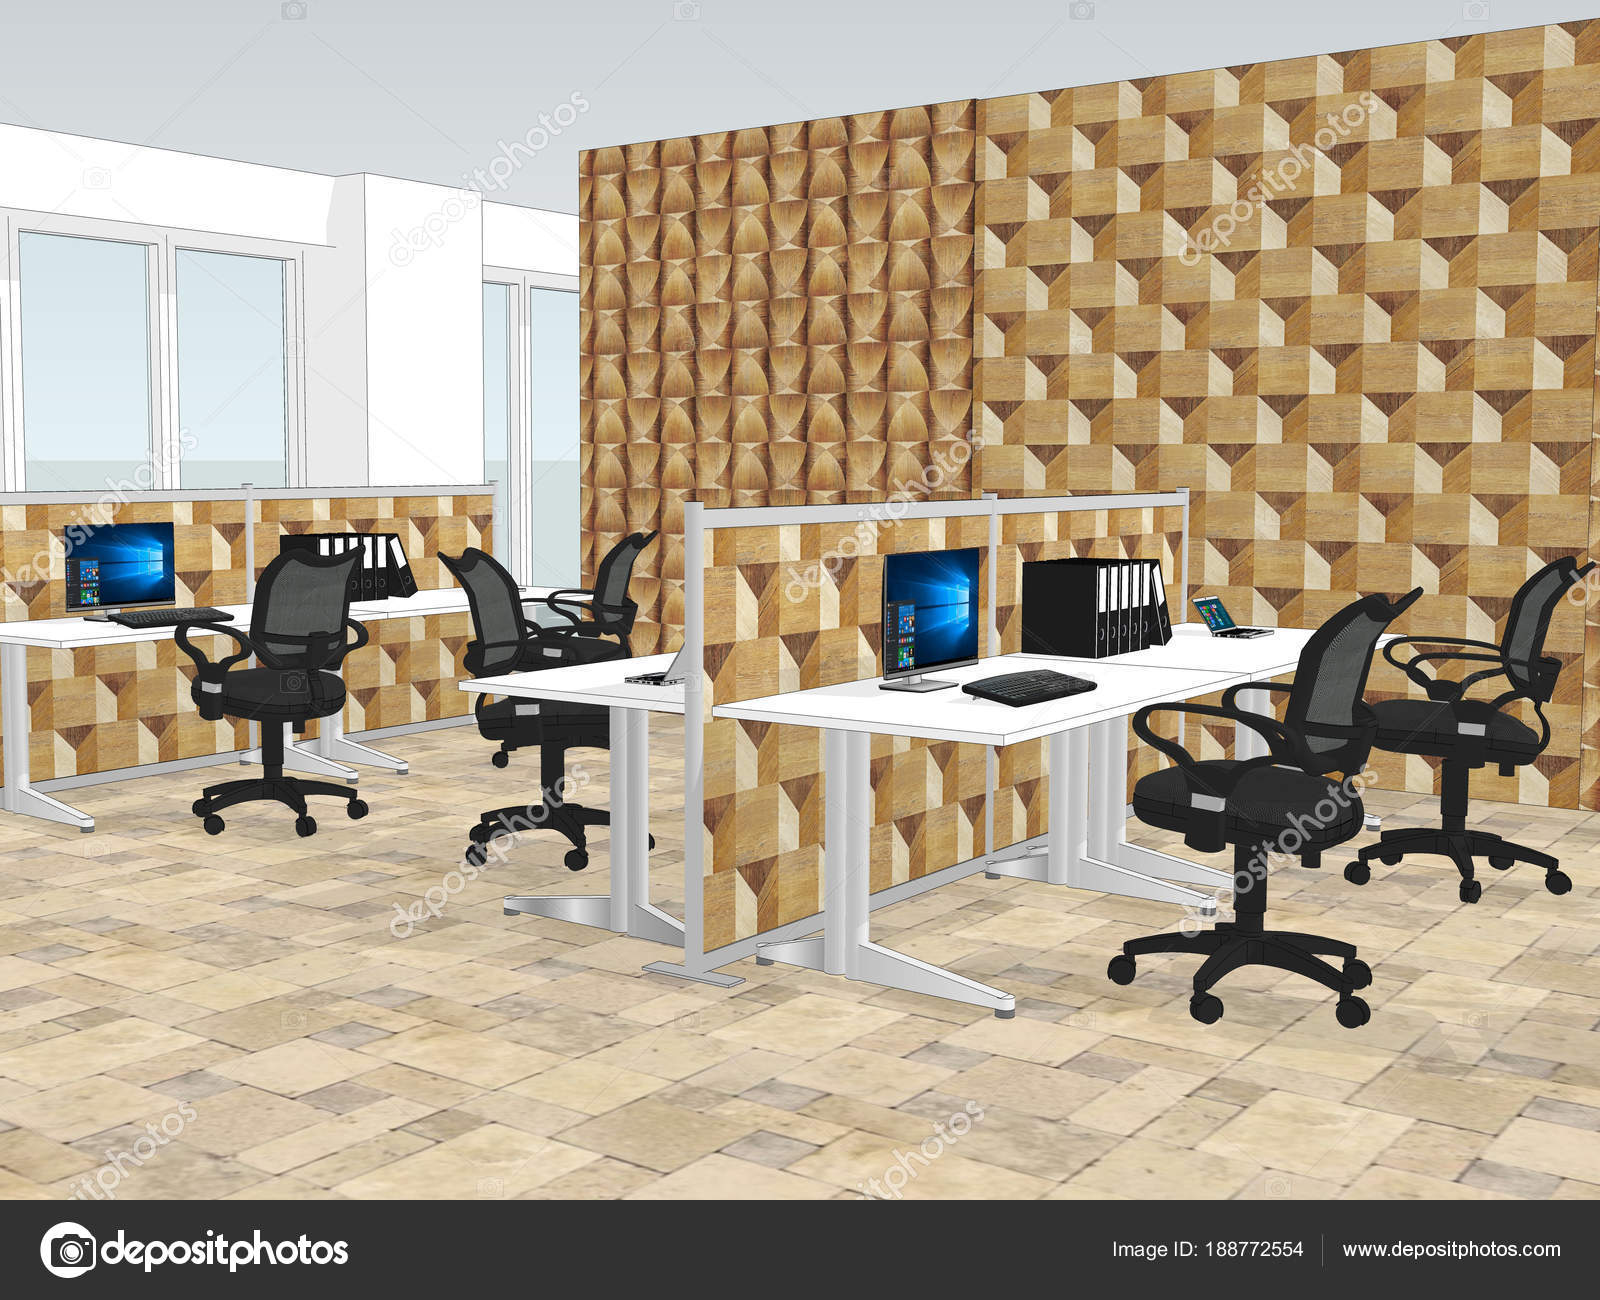 office paneling. View Of Office Space With A Wooden Wall Paneling In The Background \u2014 Stock Photo